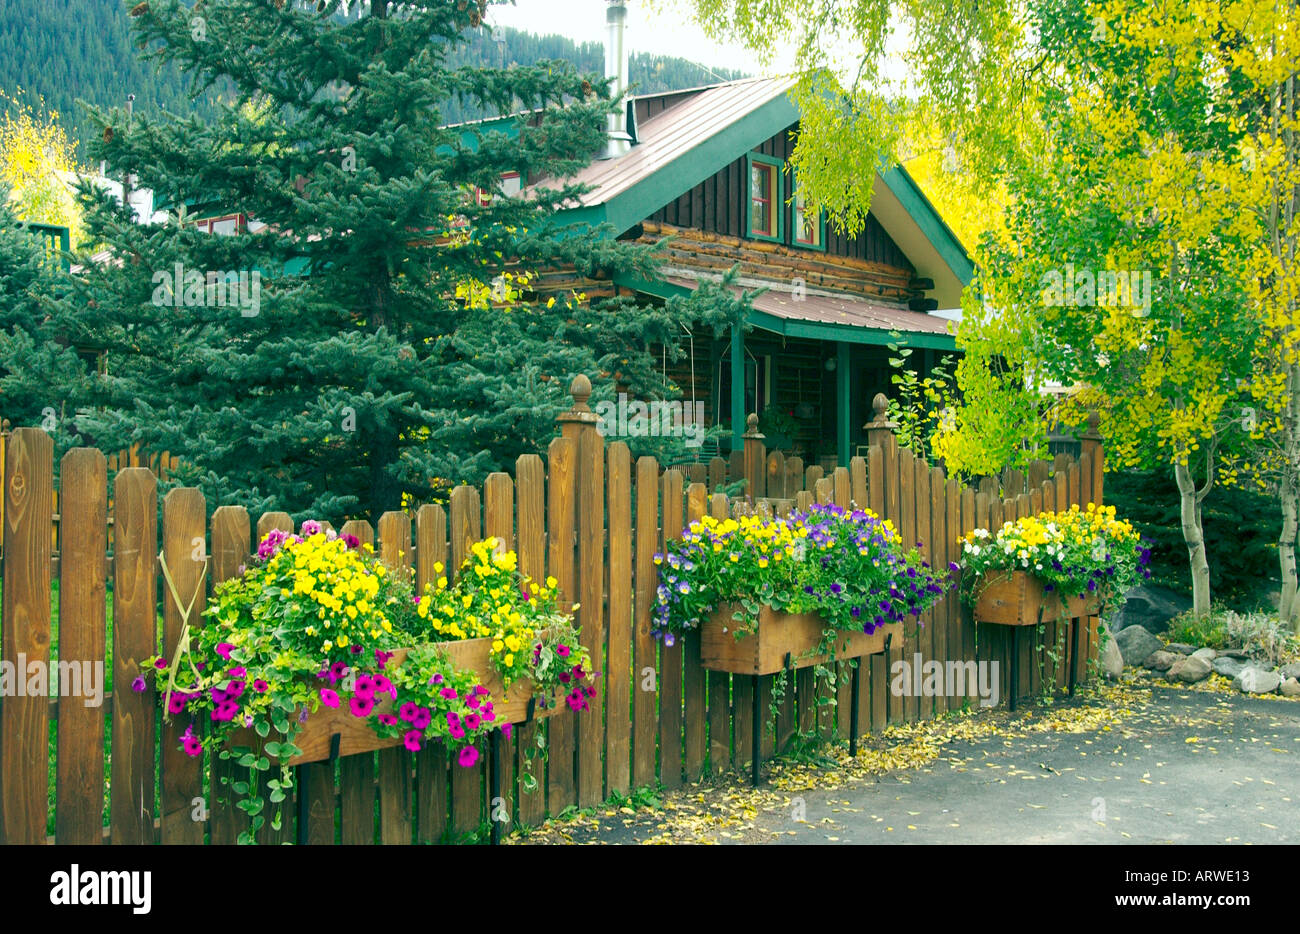 Residential Flower Boxes With Fence In Crested Butte Colorado Usa